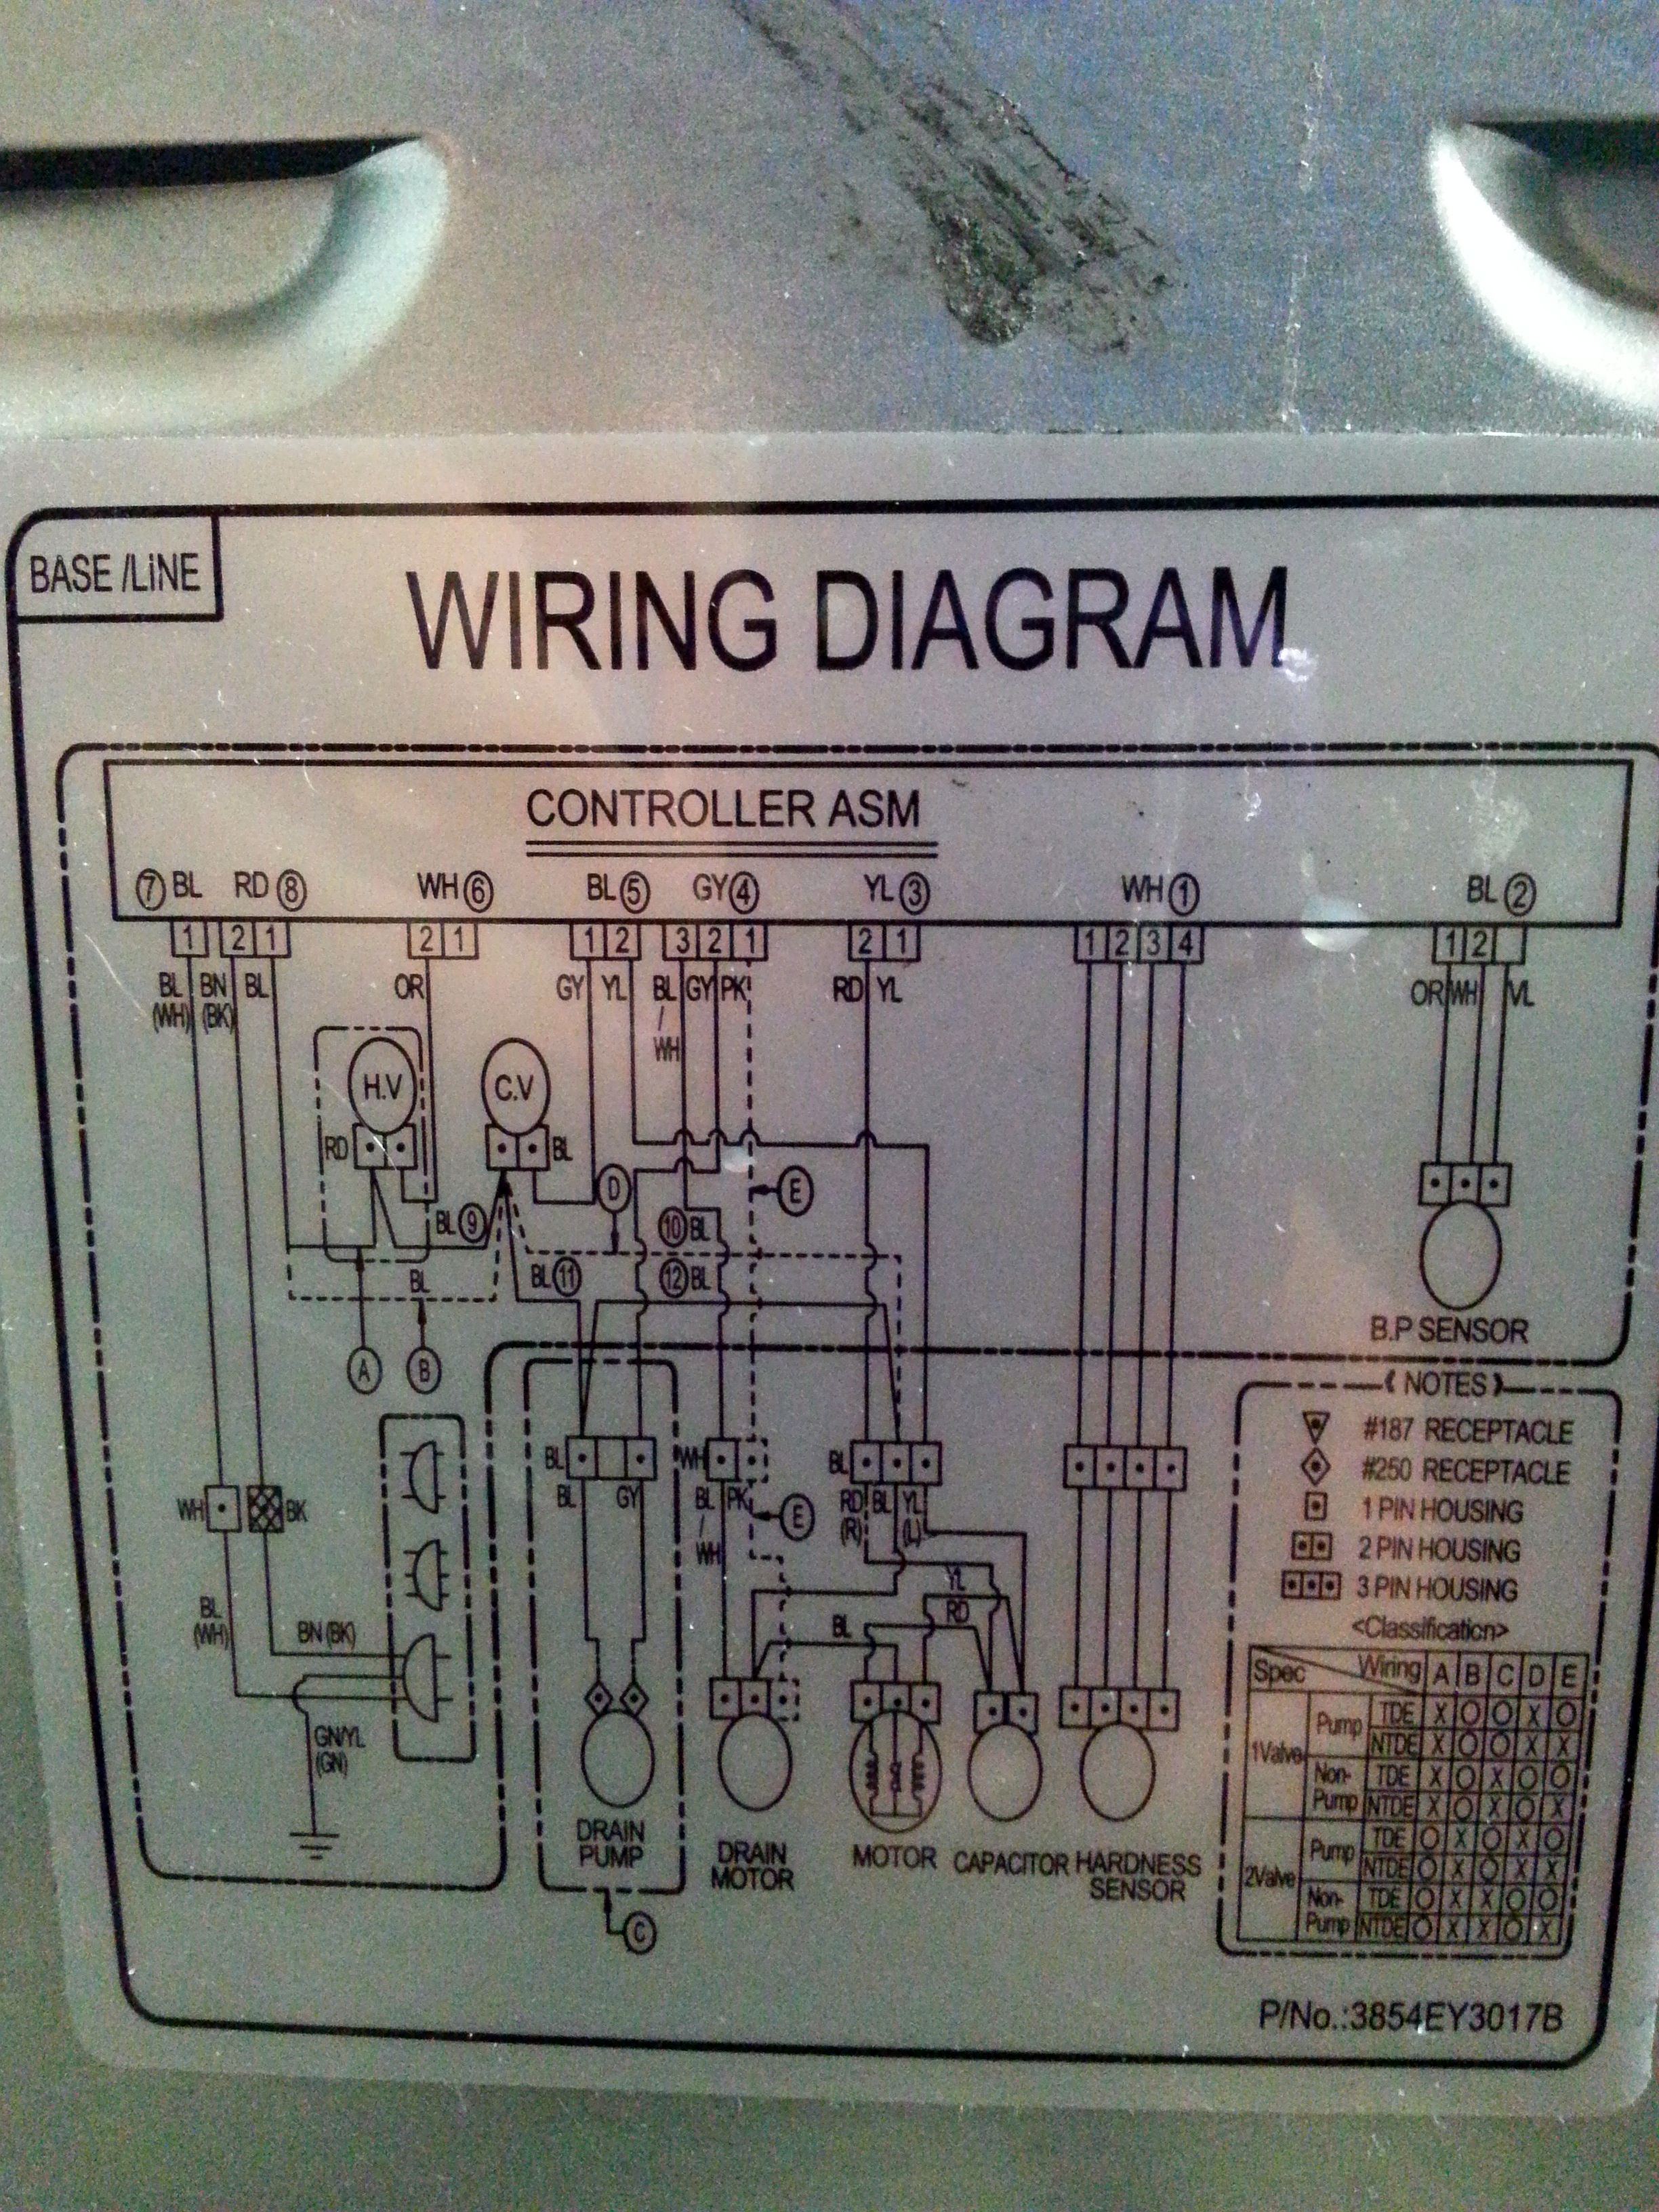 lg double door refrigerator wiring diagram lg wiring diagram lg refrigerator wiring diagram on lg double door refrigerator wiring diagram